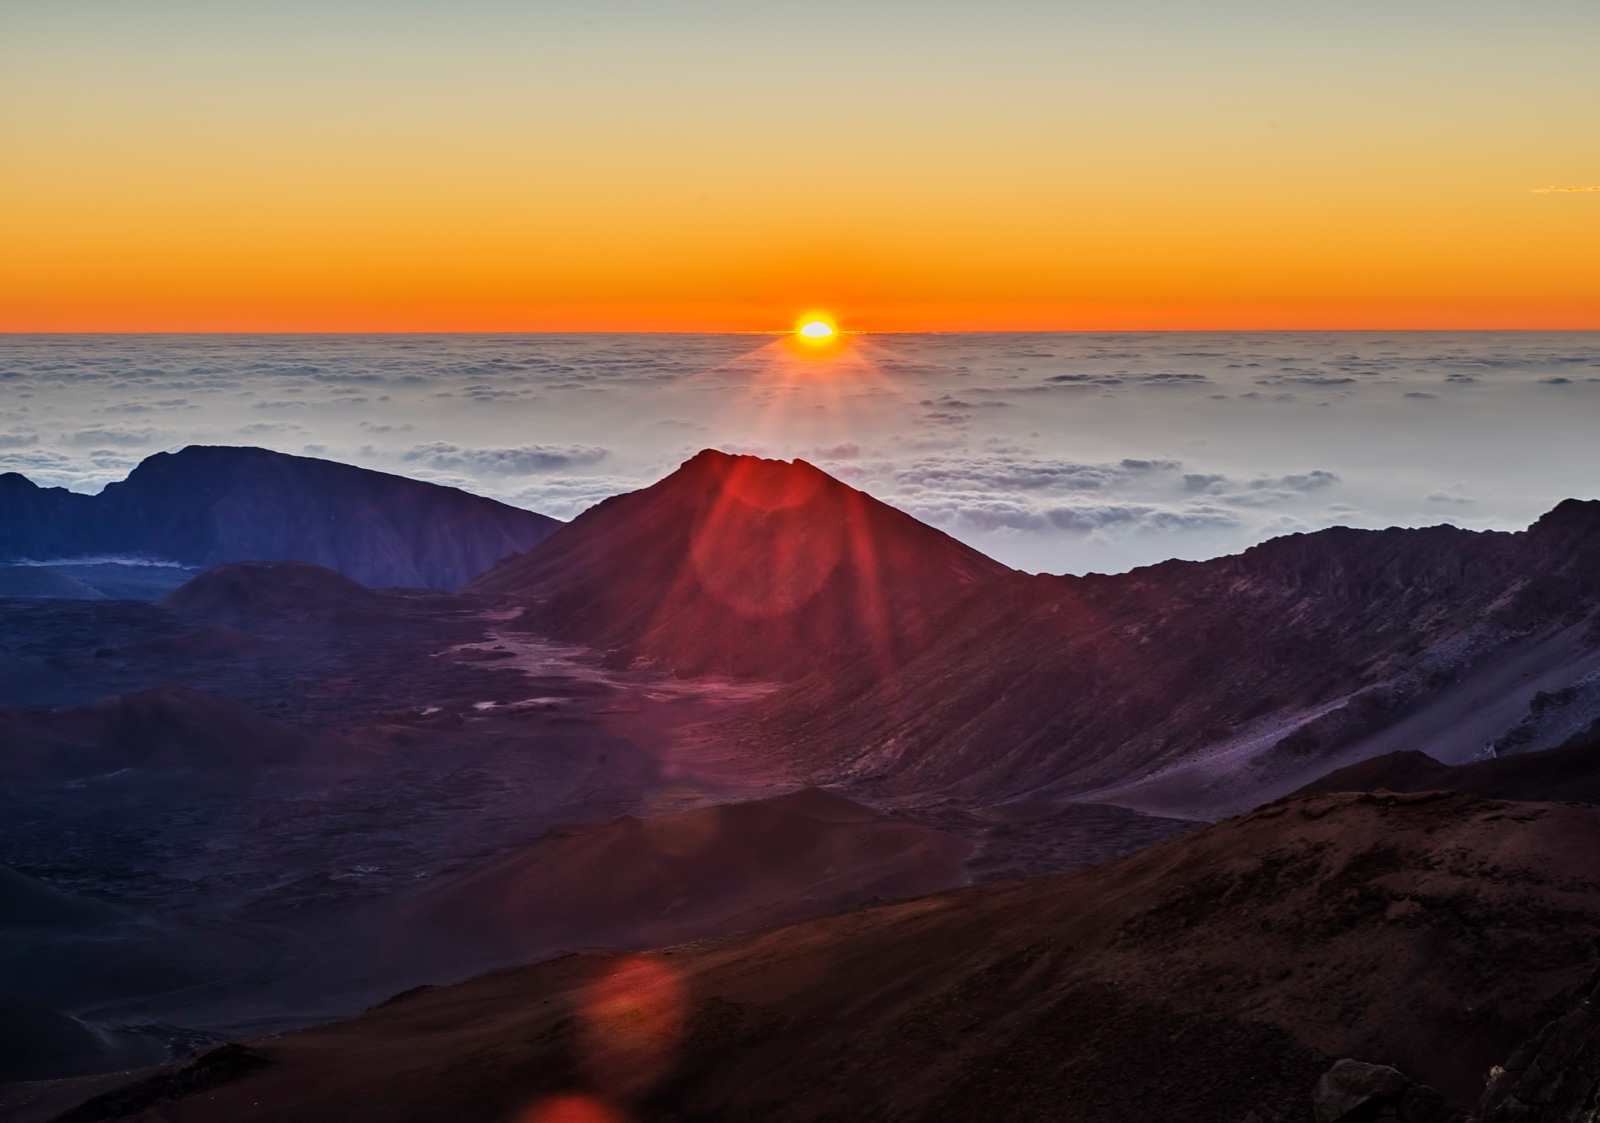 Sunrise on Mt. Haleakala by Philip Haber